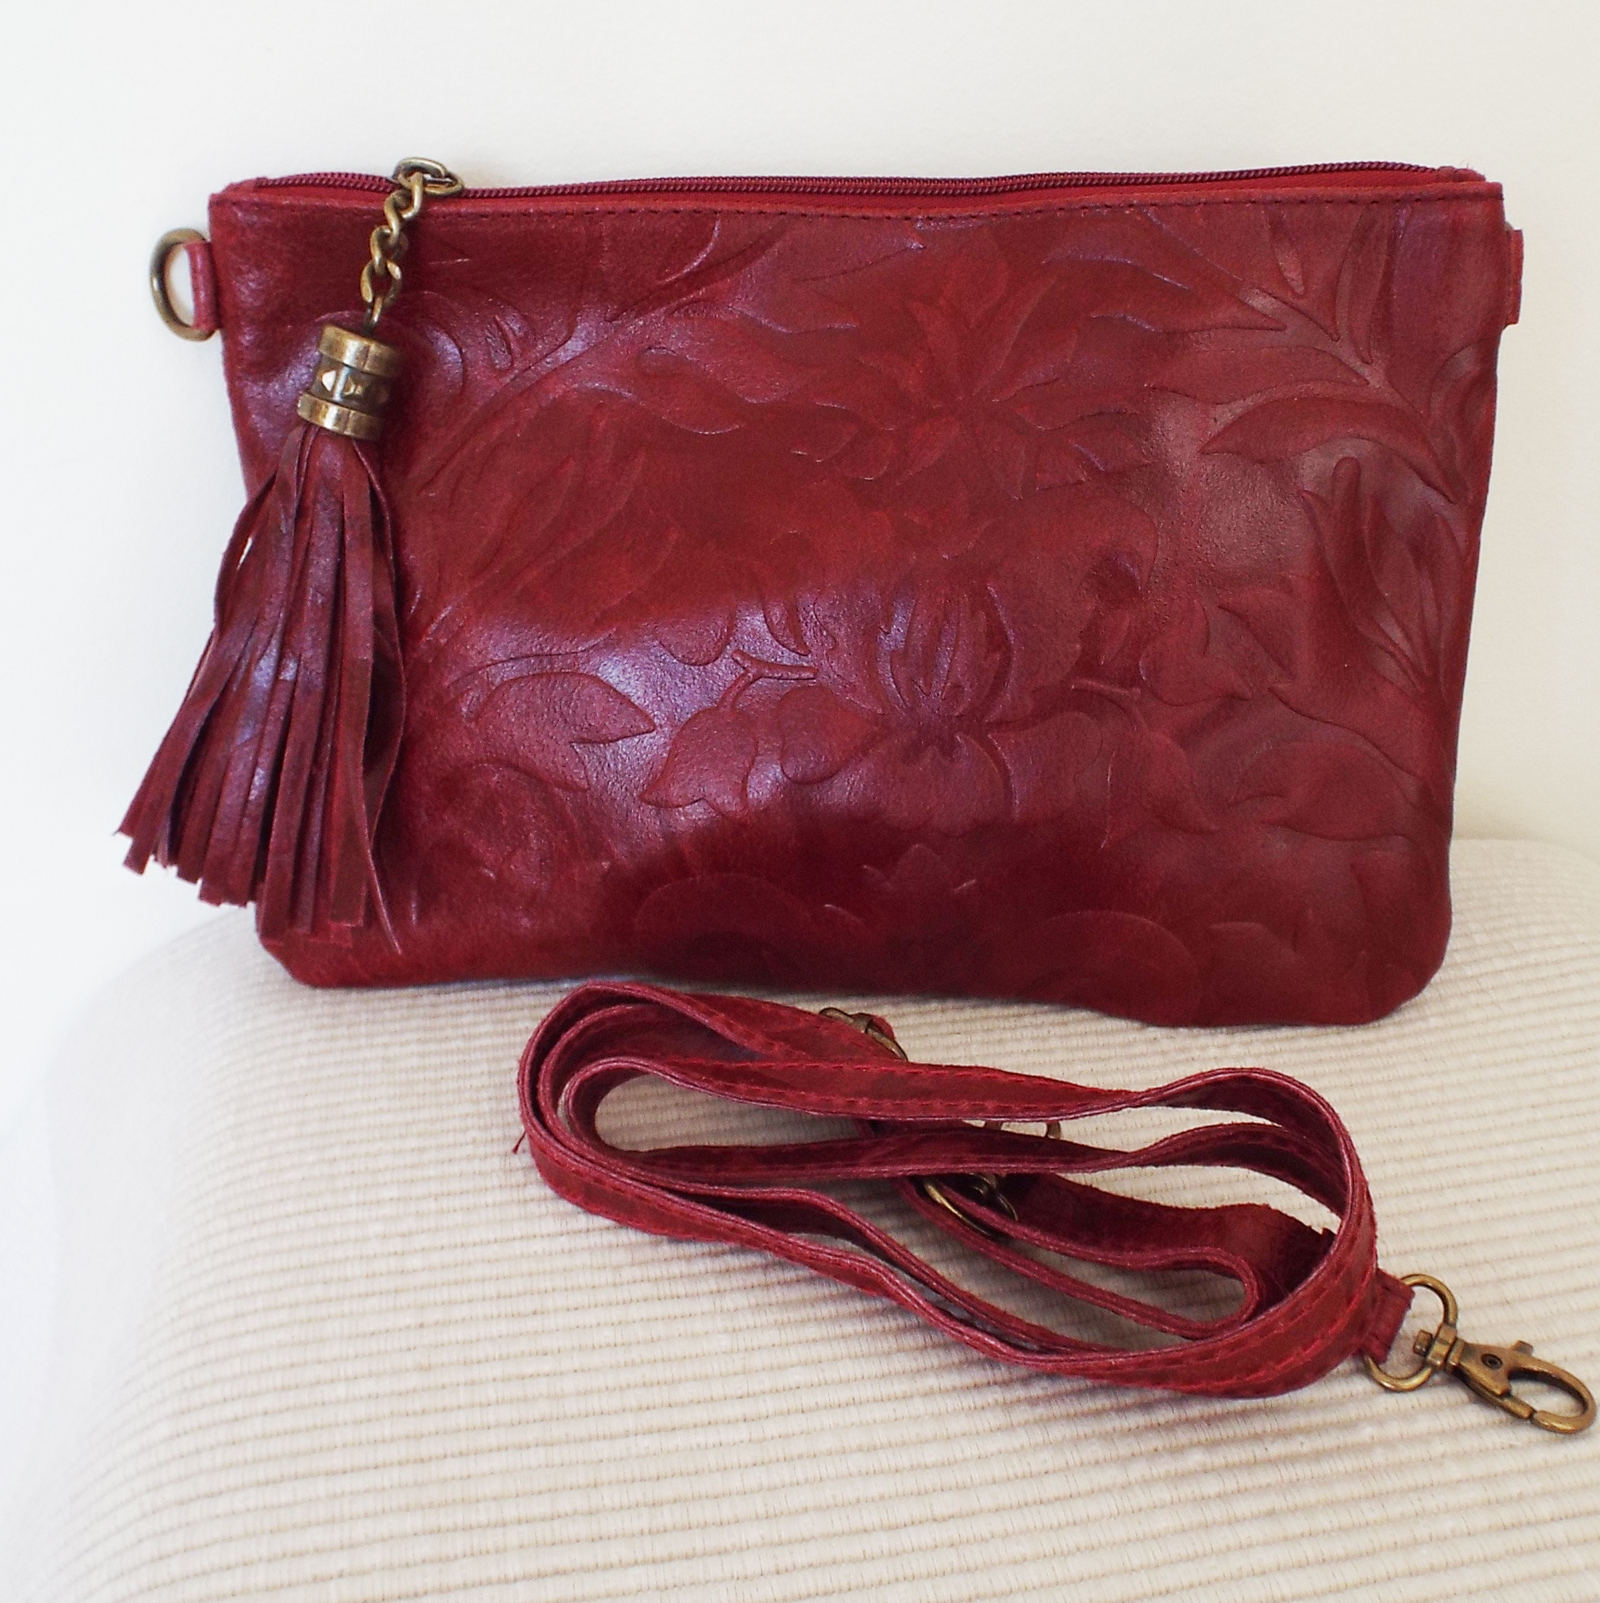 red leather clutch bag